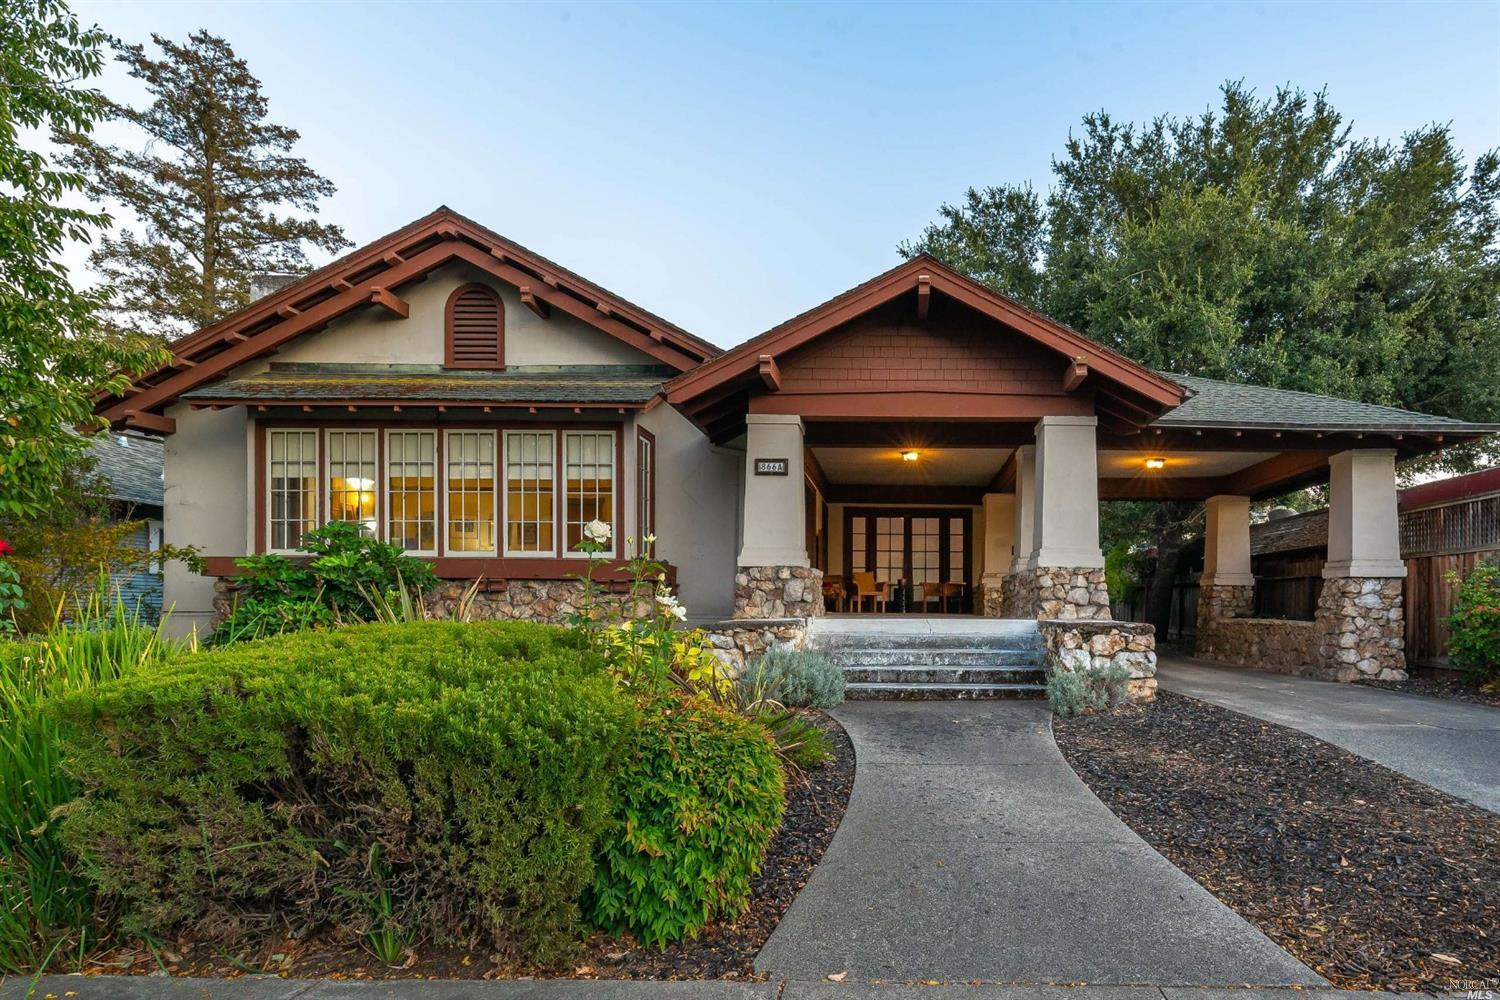 A rare find. 1915 Craftsman home with 2 rental cottages and large detached garage with bonus room. The .42 acre parcel is zoned Medium density residential. Main home is 2bd/1ba with large front porch, Formal living & dining room with beautiful wood accents and built-ins. There is a very special glass ceiling orchard room. New central heating. New windows in bedrooms, kitchen & bathroom. Walk out to the enclosed yard with newer deck. The kitchen has newer flooring, stove & dishwasher. Separate laundry room is off the kitchen. The 2 cottages are well maintained and have w/d hookups and garages. There is ample room for parking & possibility for additional units. Also listed as MLS #21925797 under Residential.